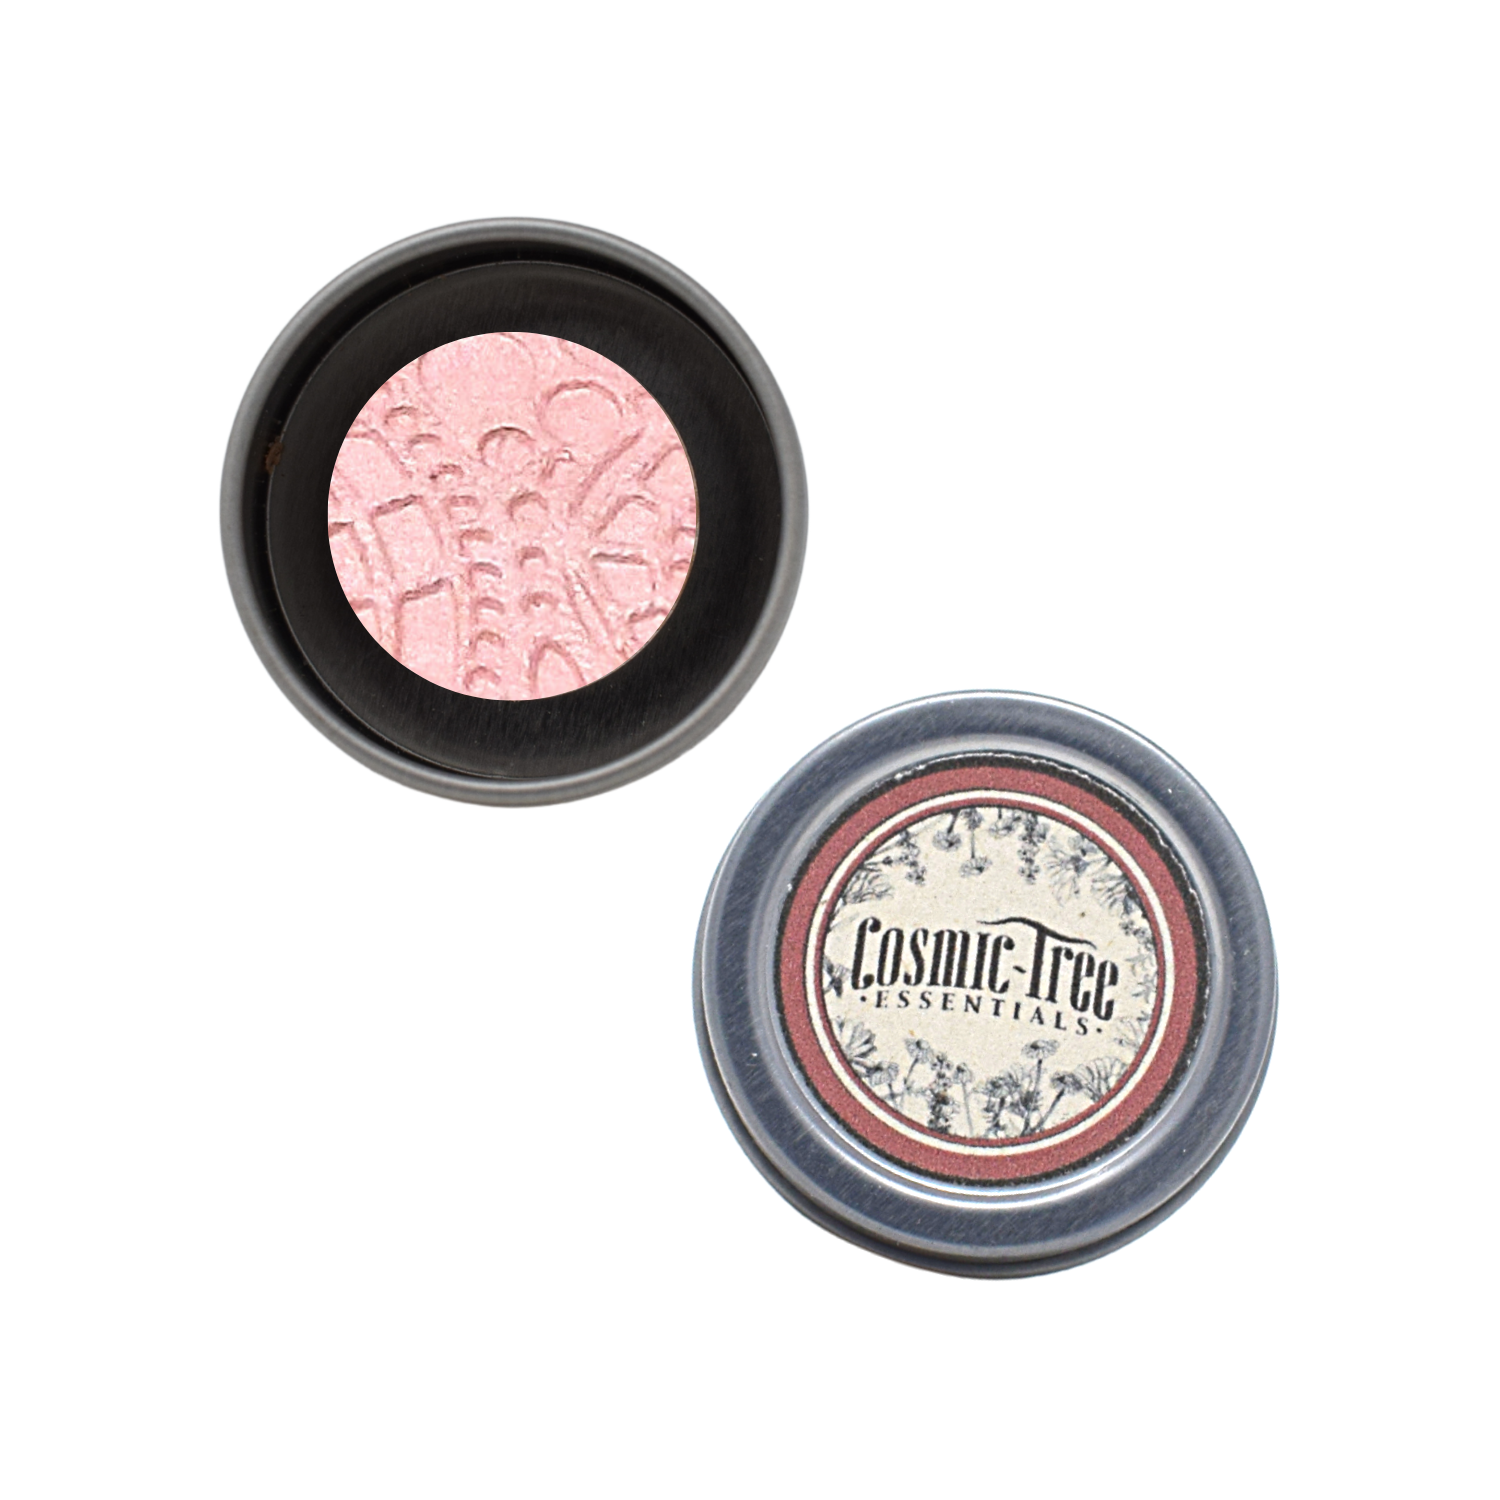 Crucible Pressed Eye Shadow in Barest Pink